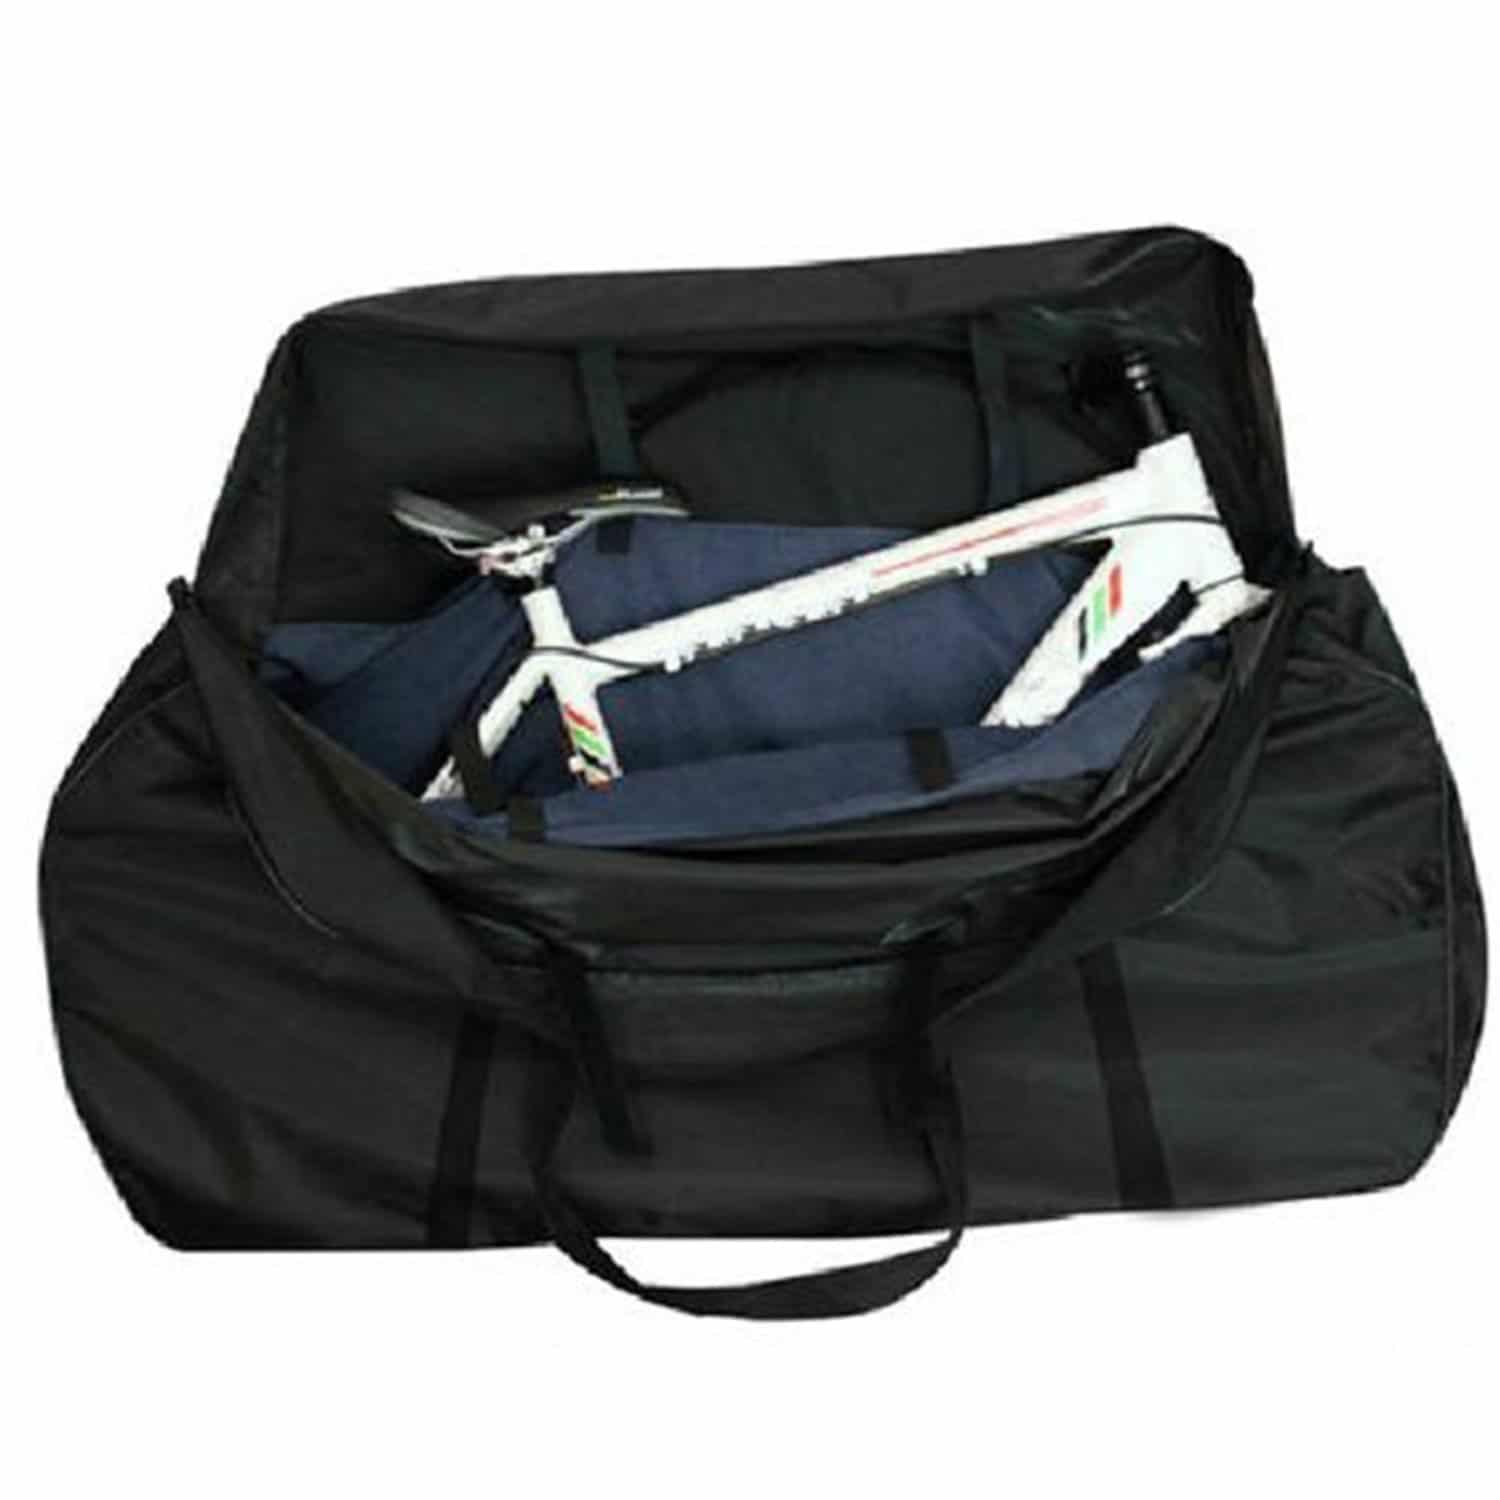 Top 10 Best Bike Travel Cases In 2018 Review